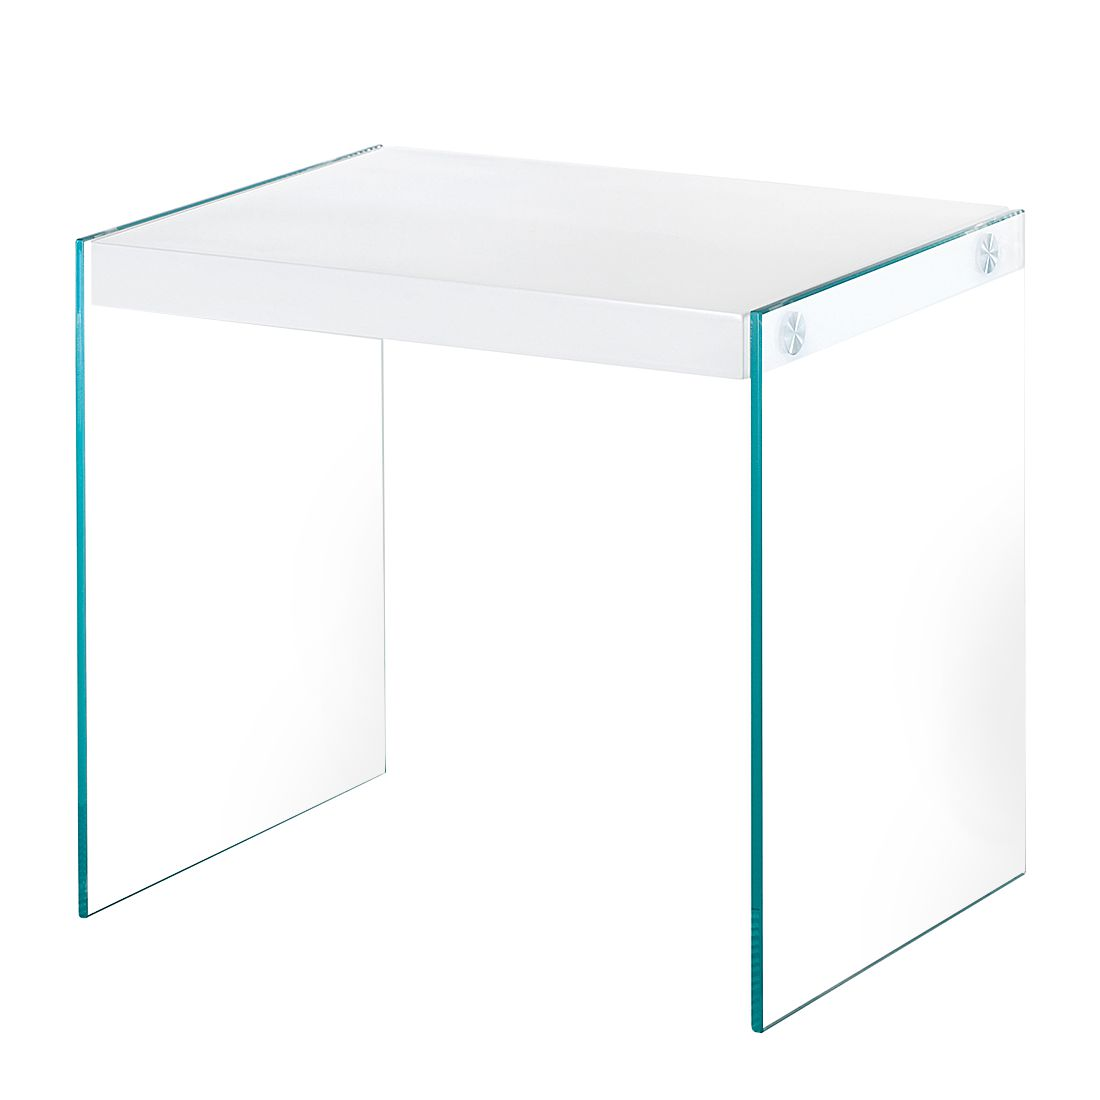 Table d'appoint Savoie - Verre transparent / Blanc brillant, Home Design